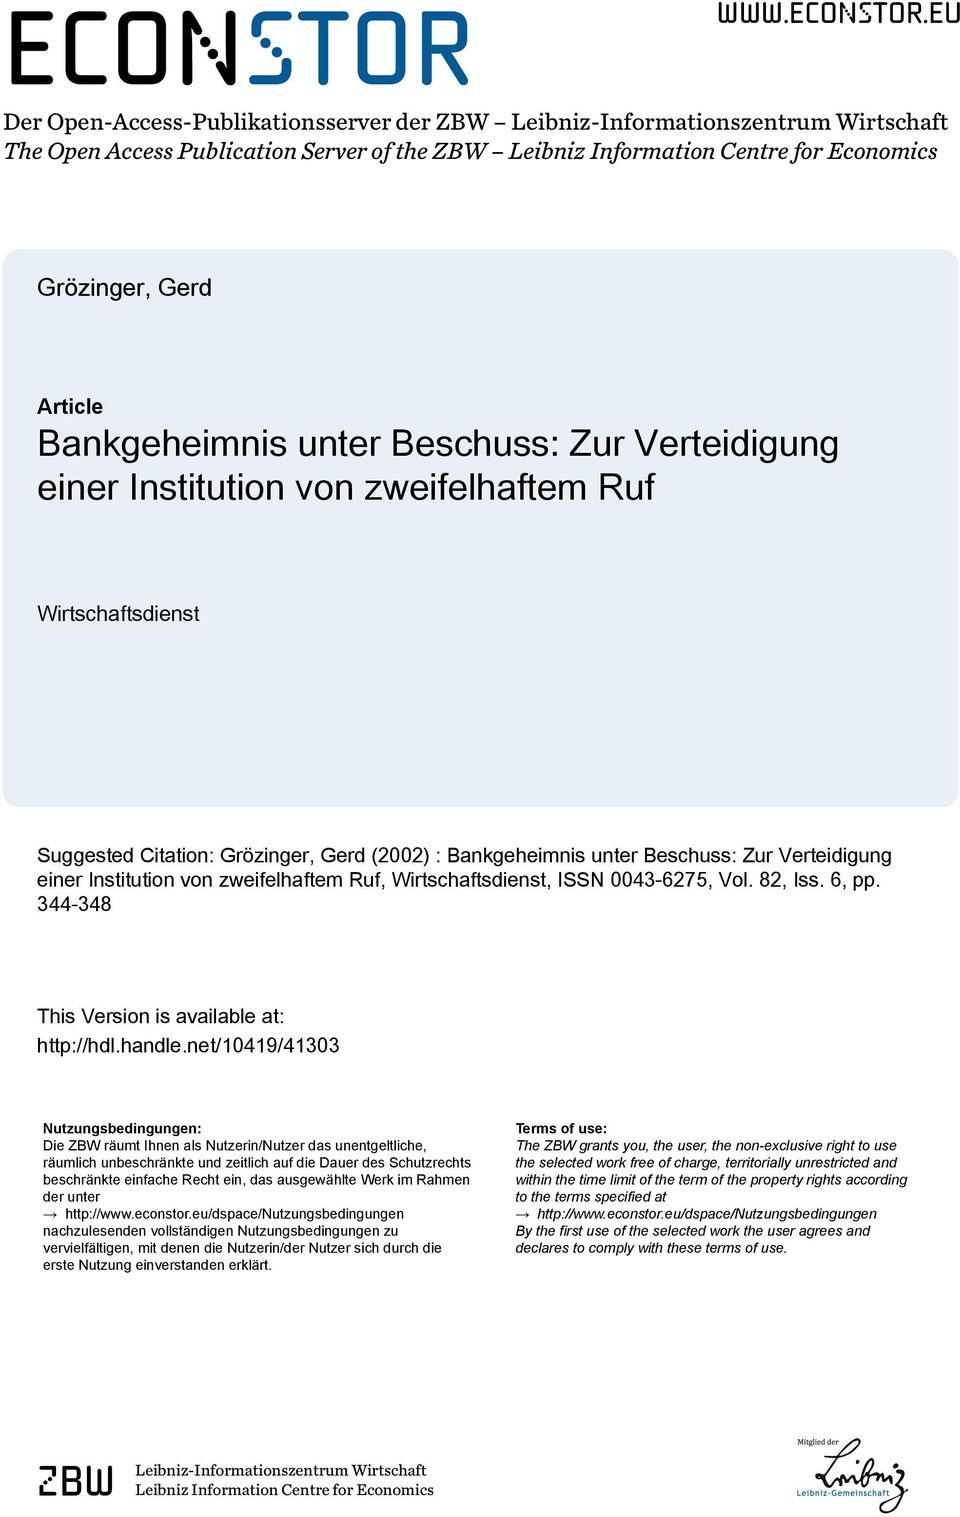 eu Der Open-Access-Publikationsserver der ZBW Leibniz-Informationszentrum Wirtschaft The Open Access Publication Server of the ZBW Leibniz Information Centre for Economics Grözinger, Gerd Article